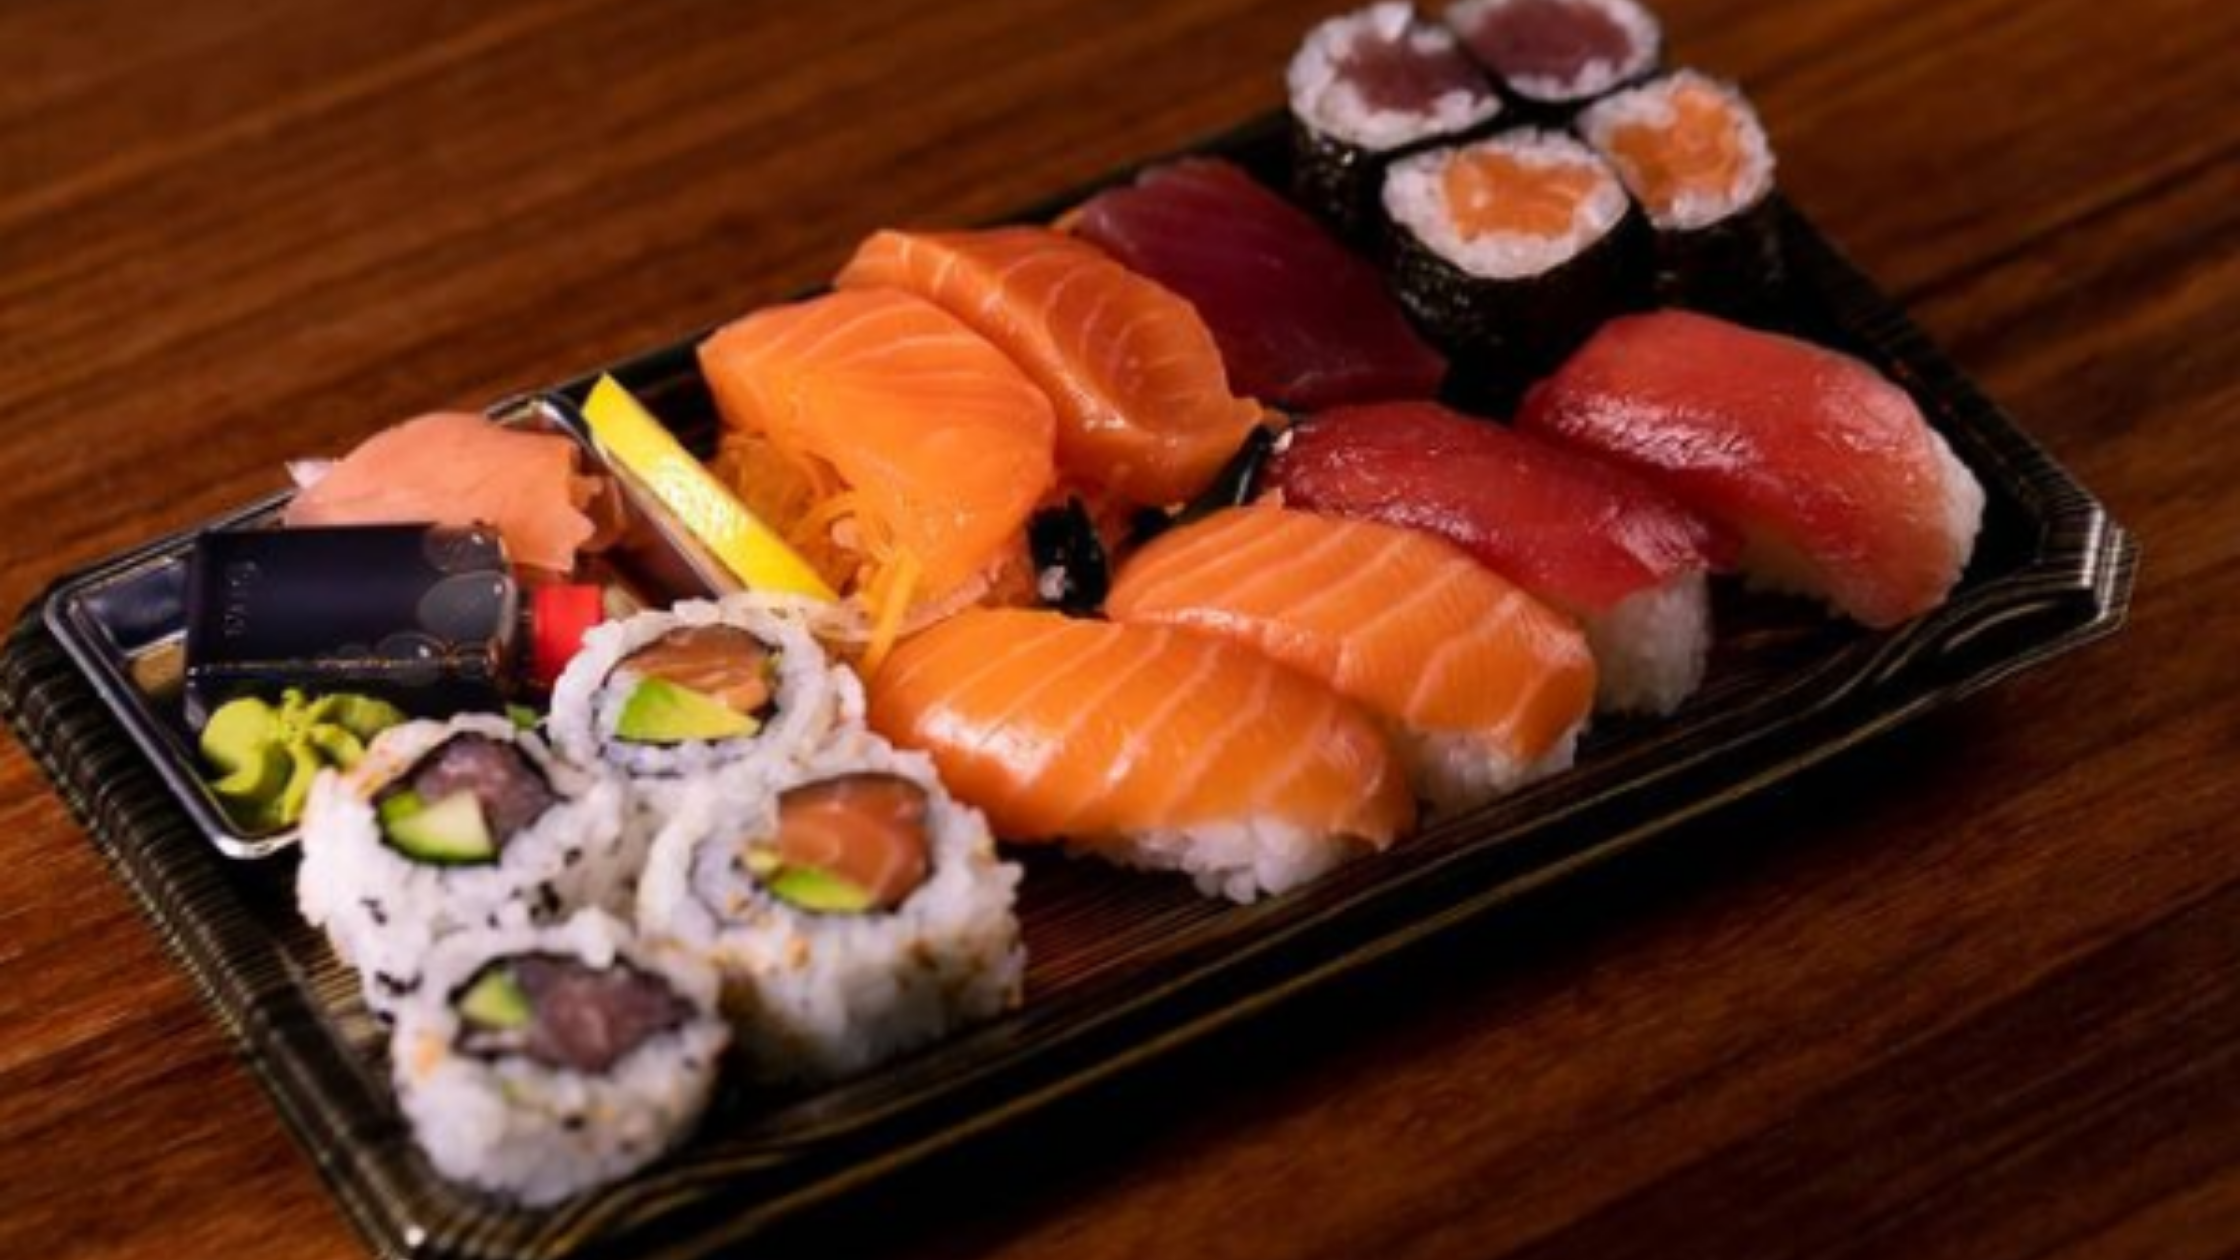 Healthy sushi meal from K10